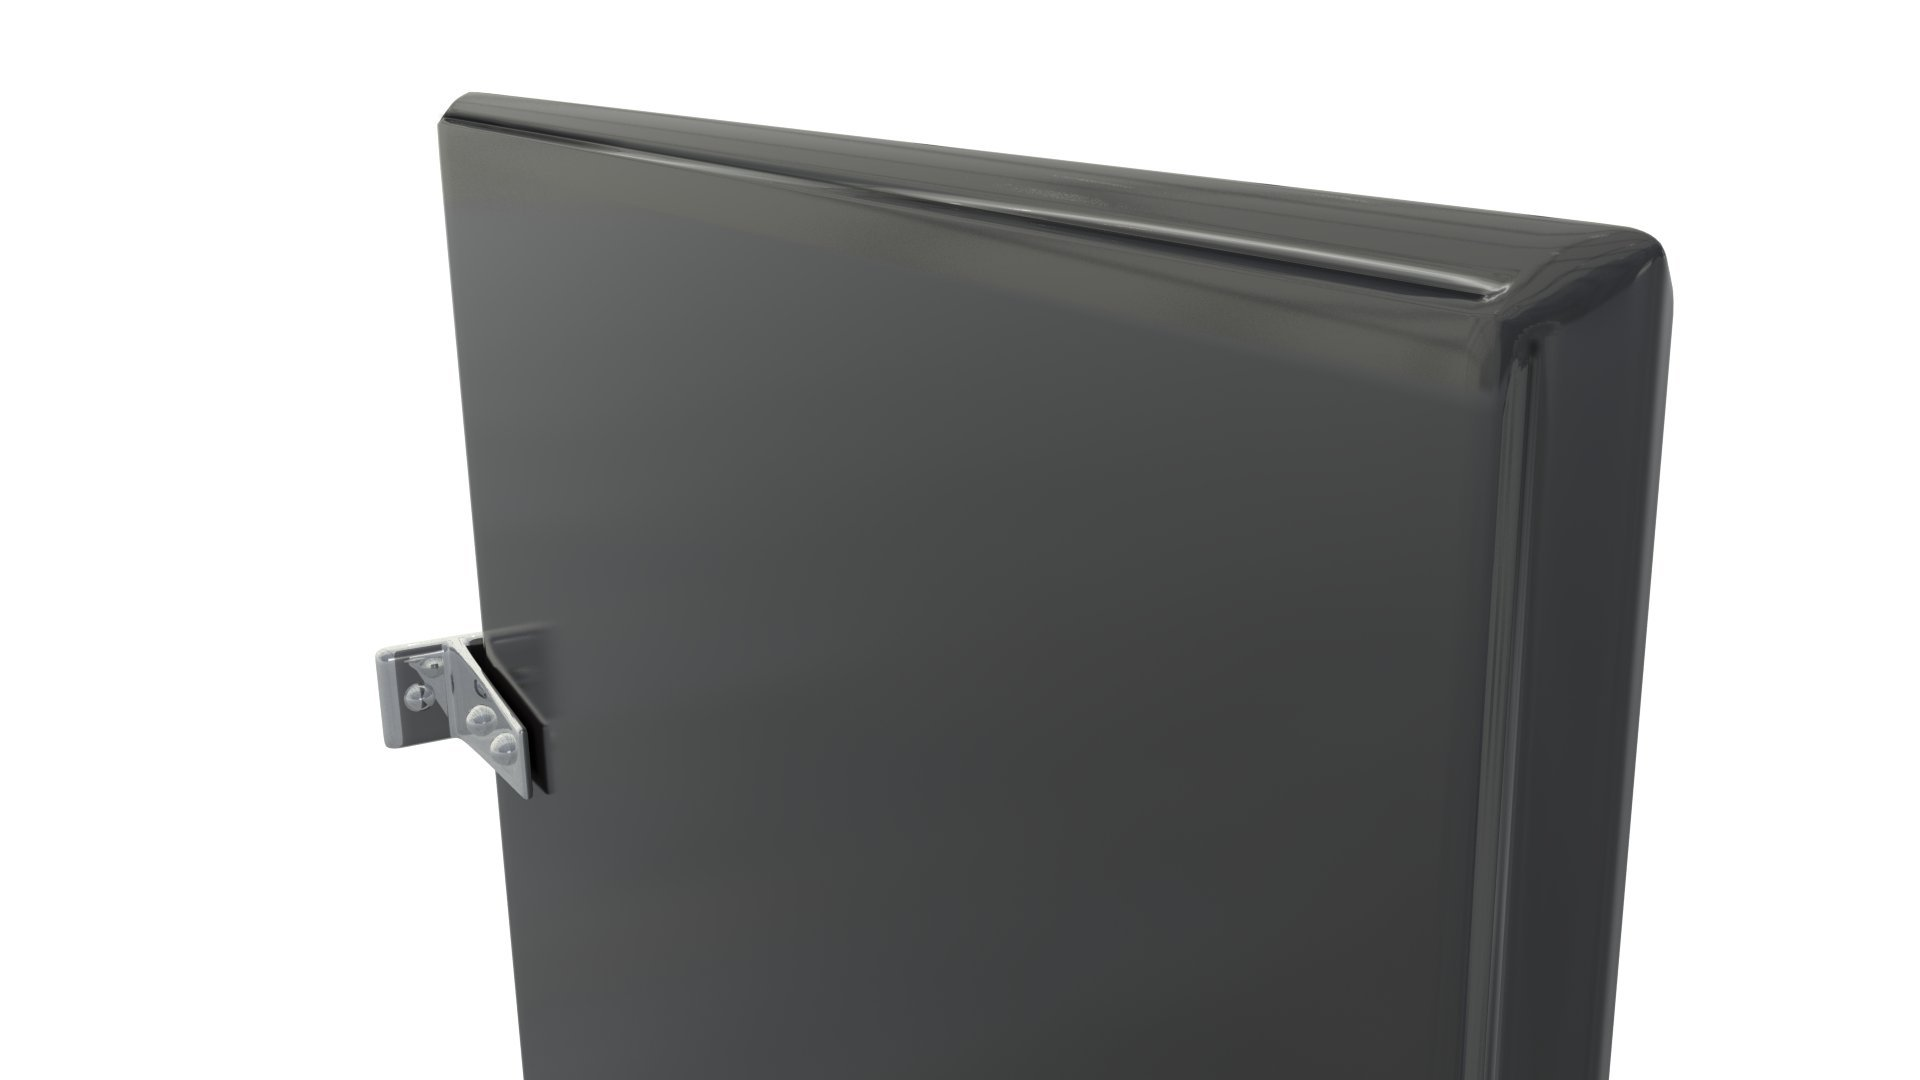 Powder Coated Urinal Stall Partition Divider Screen With Wall Hung Mounting Brackets Kit (Black)